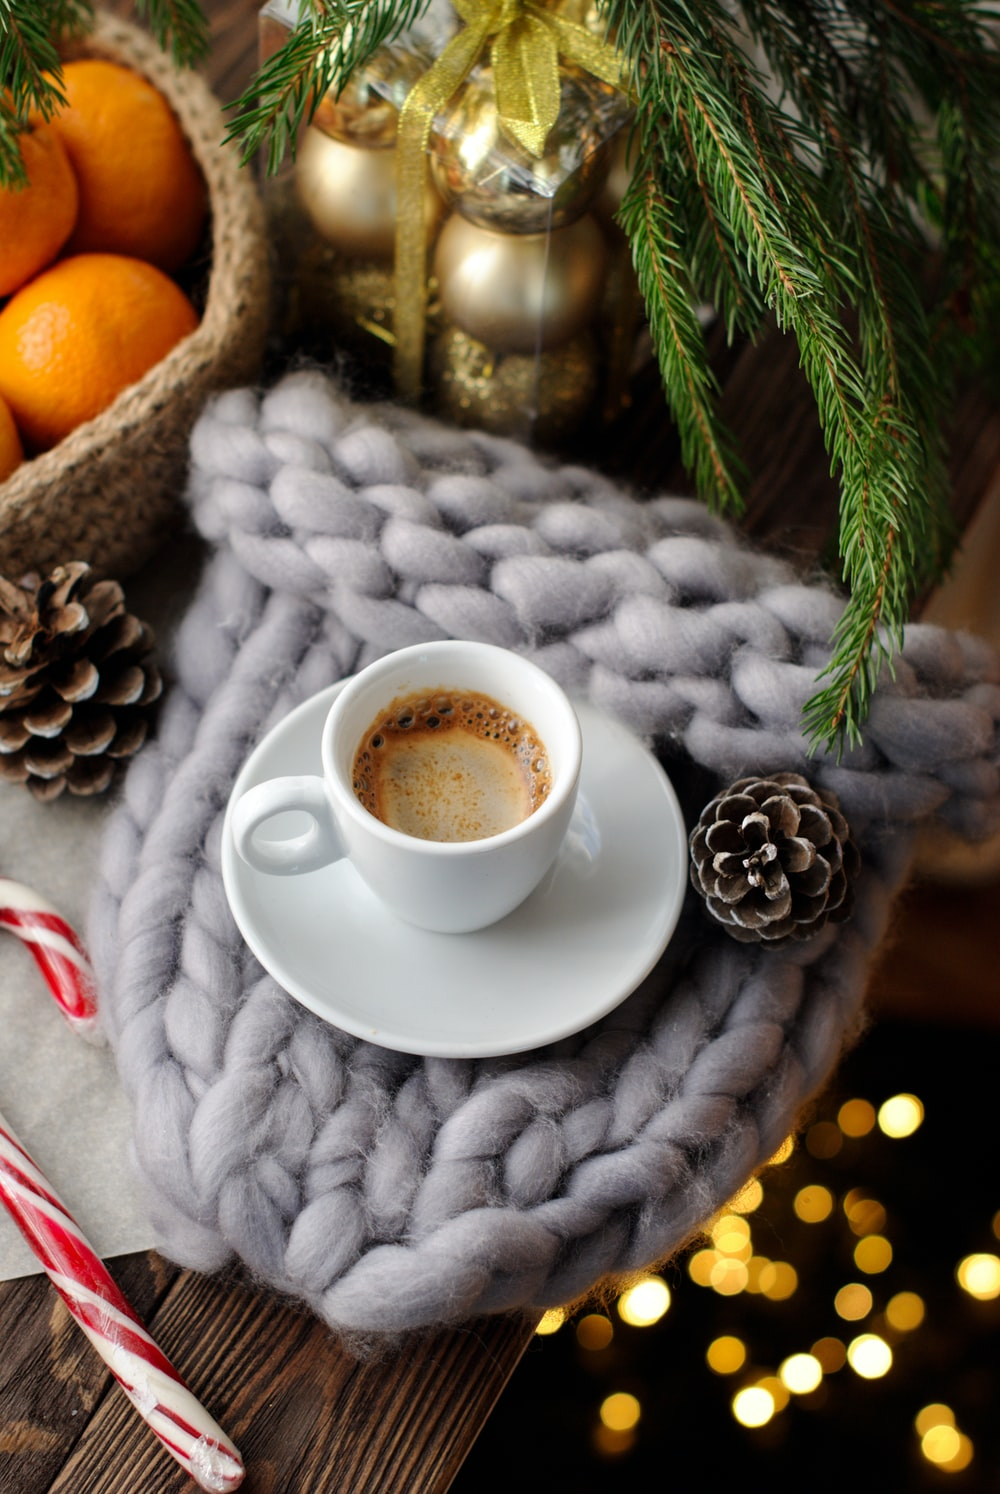 cappuccino on white ceramic mug near brown pinecone, gold baubles, and orange fruits in wicker basket